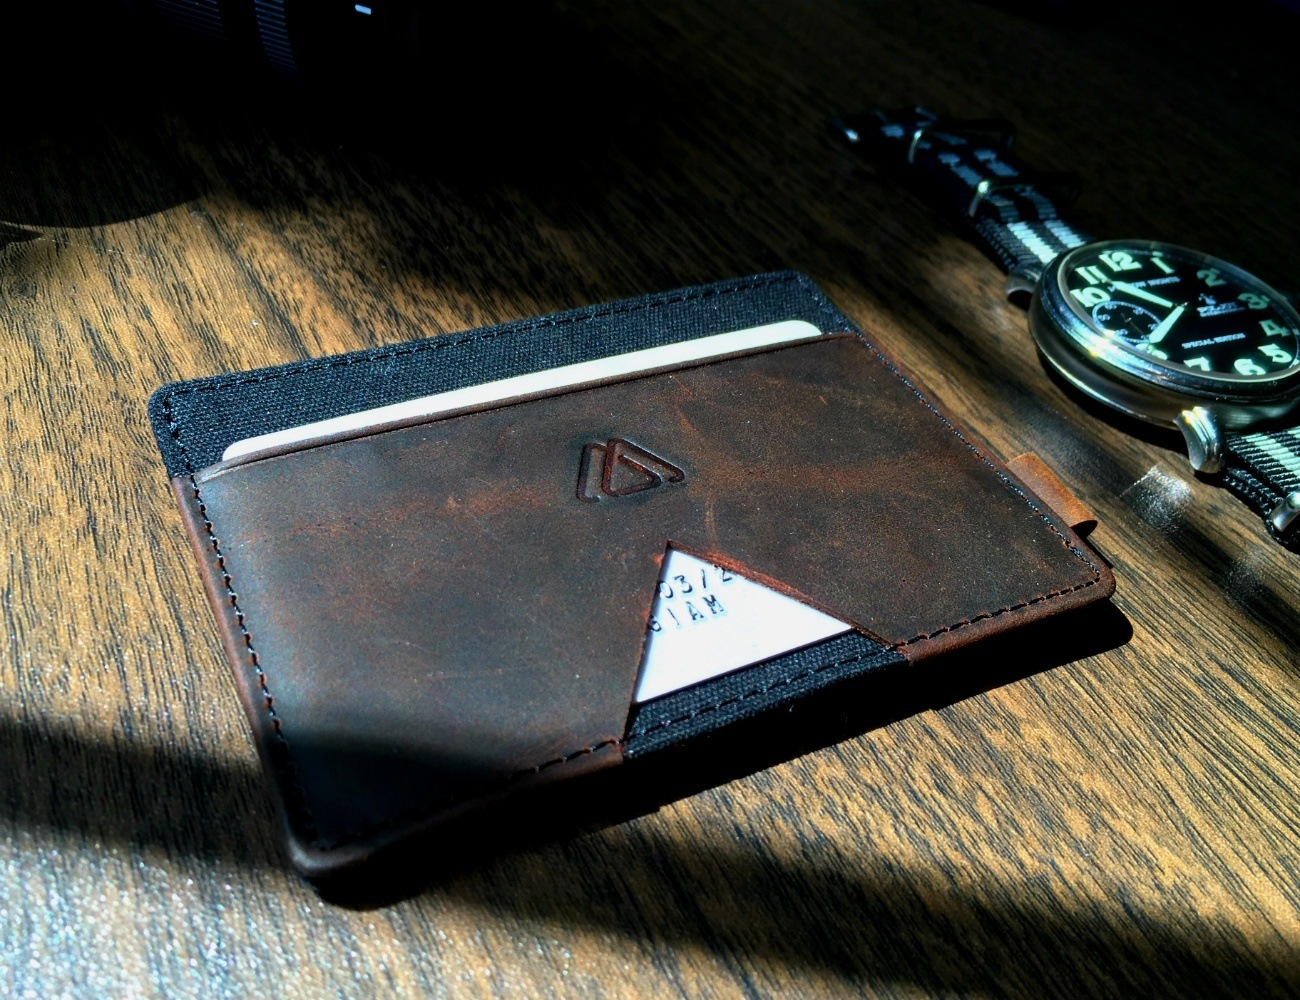 Mark is the perfect cardholder for minimalists